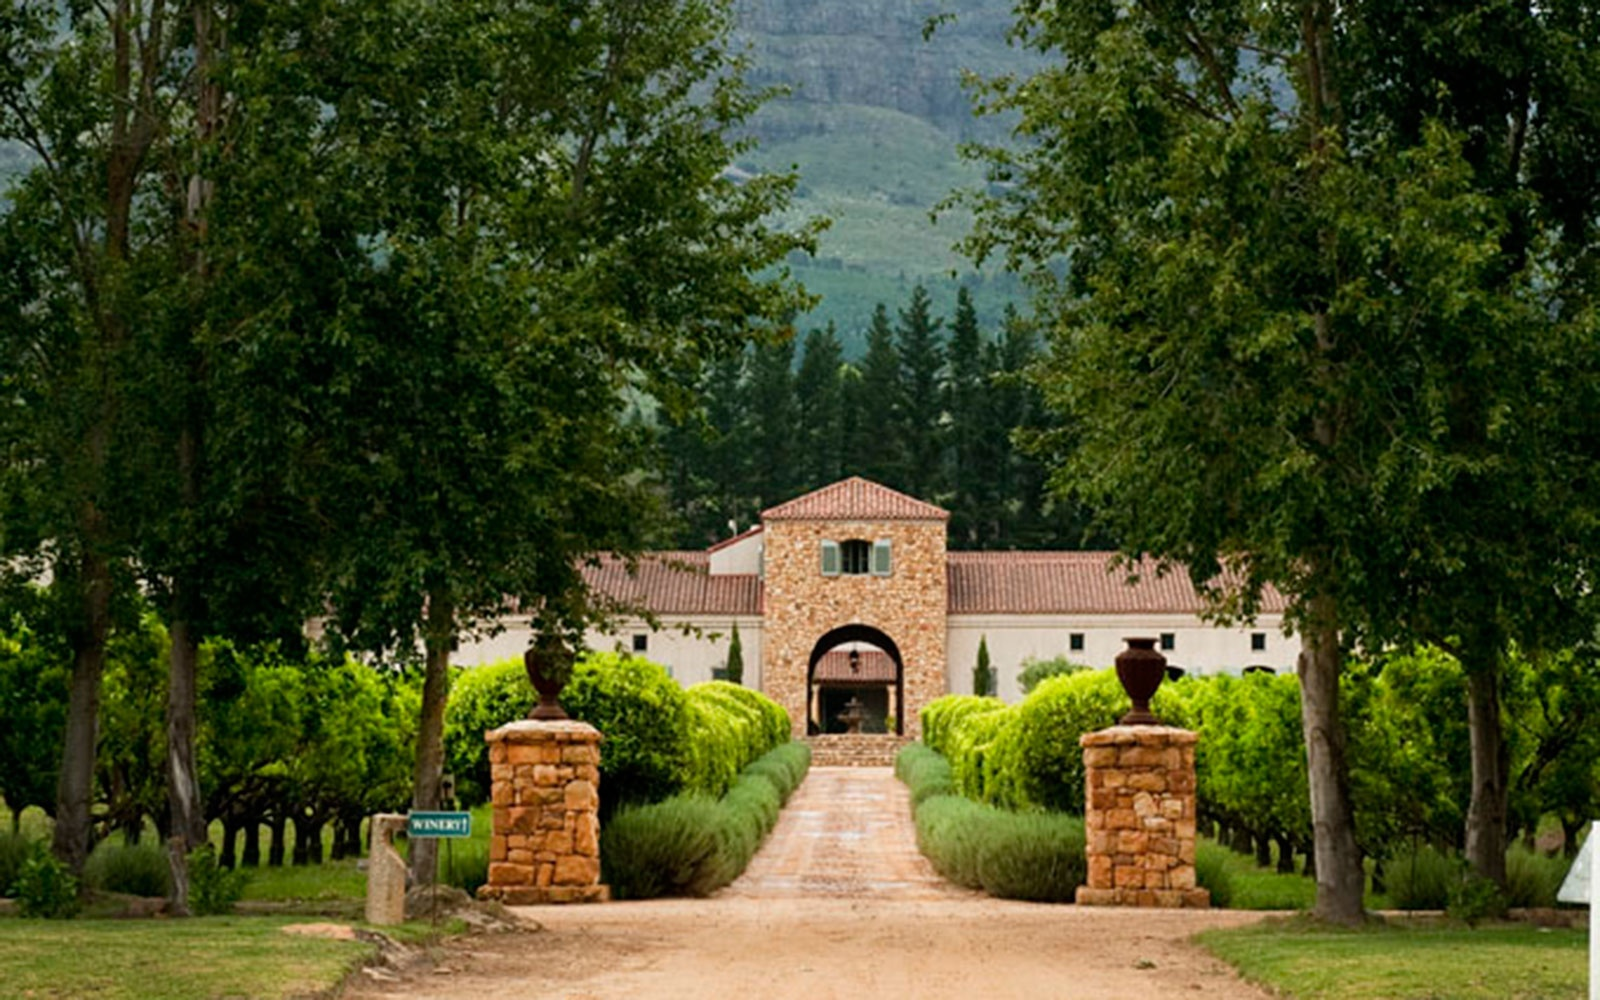 Waterford Estate's 120ha property is situated on the slopes of the beautiful Helderberg Mountain in the Stellenbosch region – the undisputed wine capital of South Africa.                                   Waterford Estate was designed by architect Alex Walker and created from quarried local bedrock, stones from the vineyard and timber grown on the estate. It was styled along the engaging terracotta design of the classic Bordeaux chateaus of France.                                    They have chosen to use only half of the total land for the planting of vines, in order to preserve and maintain the natural flora and fauna of the beautiful Blaauwklippen (blue stone) valley. As part of their biodiversity program, they wish to show visitors our intensions in terms of sustainable agriculture, since they are aiming to achieve an organic approach to wine farming.